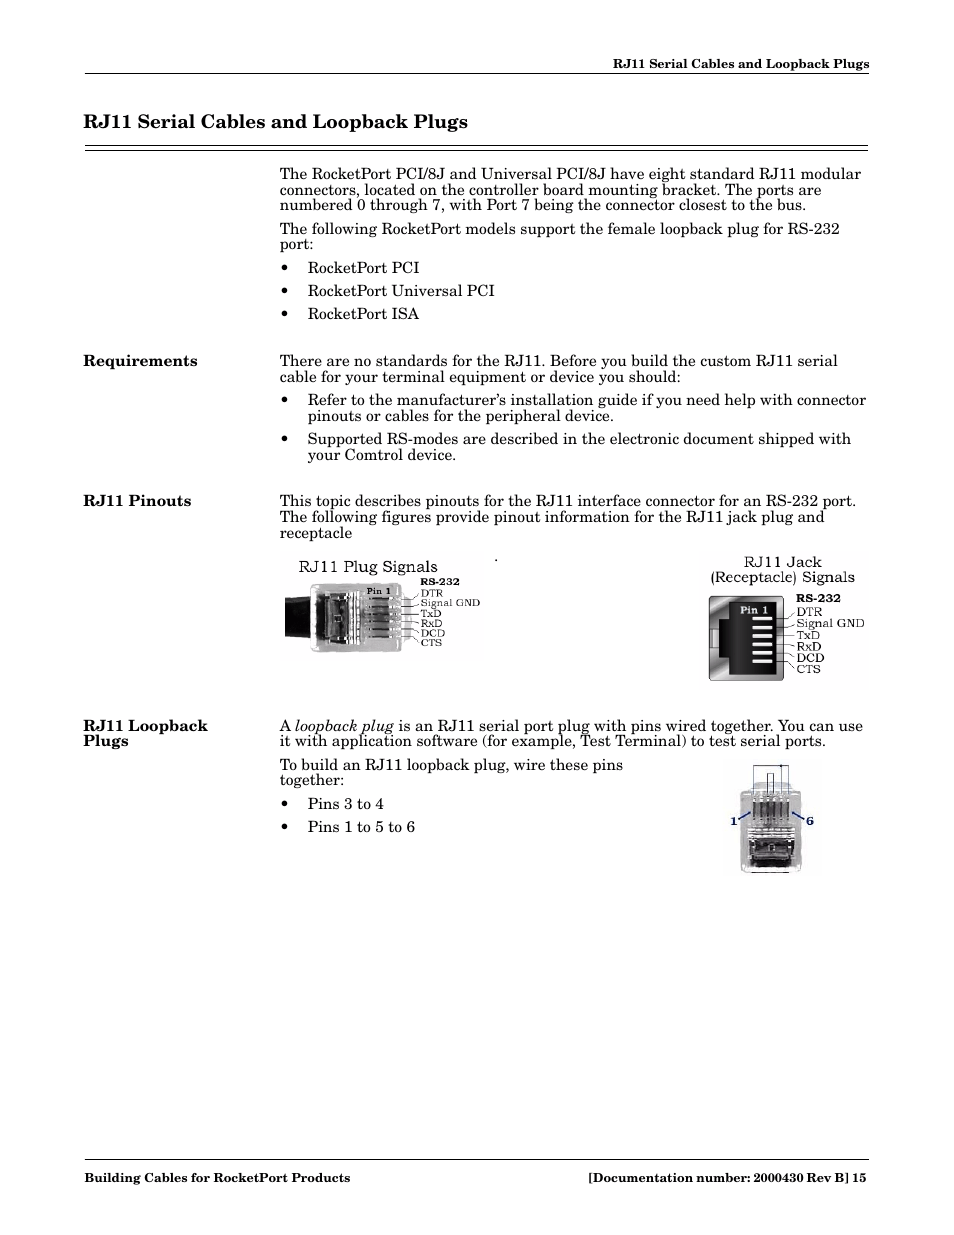 hight resolution of rj11 serial cables and loopback plugs requirements rj11 pinouts comtrol cable user manual